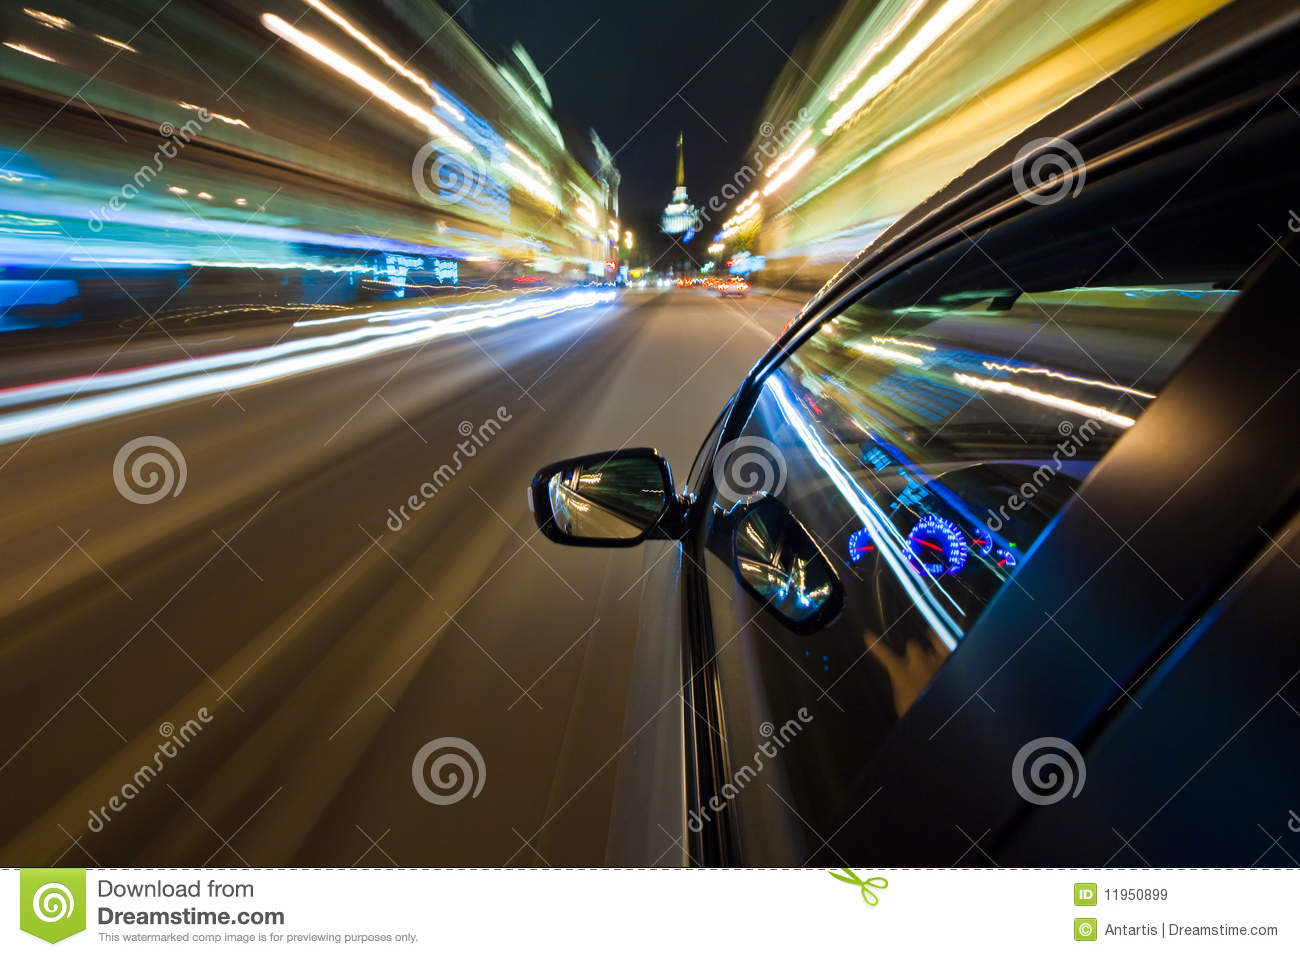 Wallpaper Speed Car Car Driving Fast In The Night City Stock Image Image Of